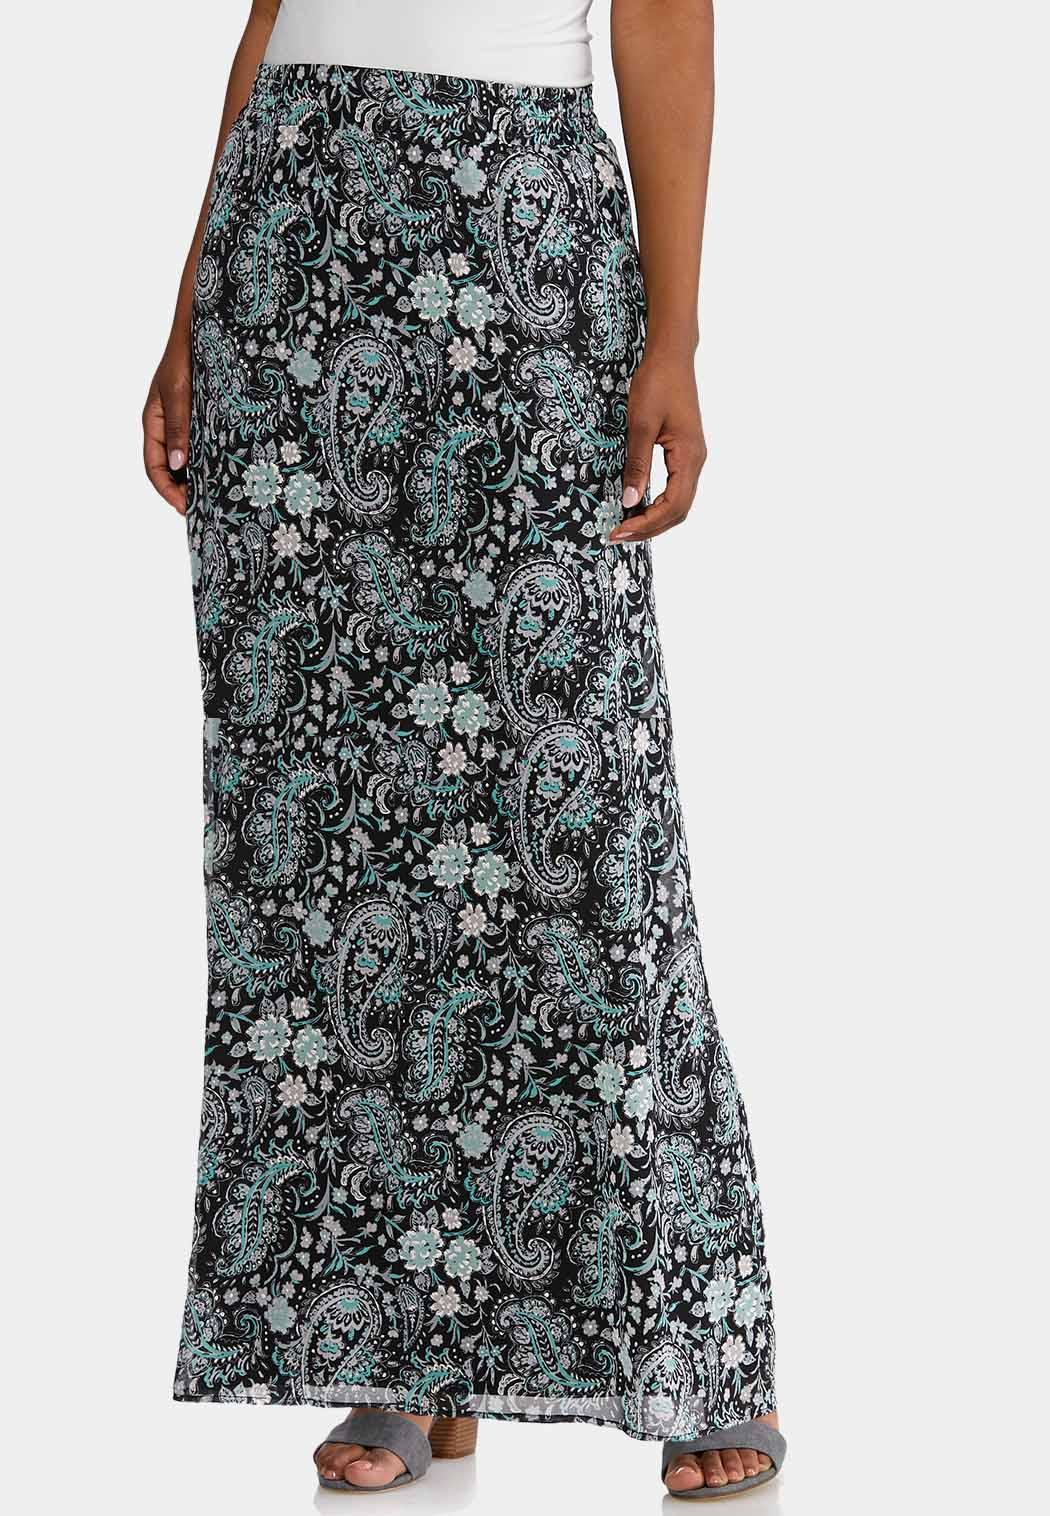 87779449de4 Puff Floral Paisley Maxi Skirt Skirts Cato Fashions